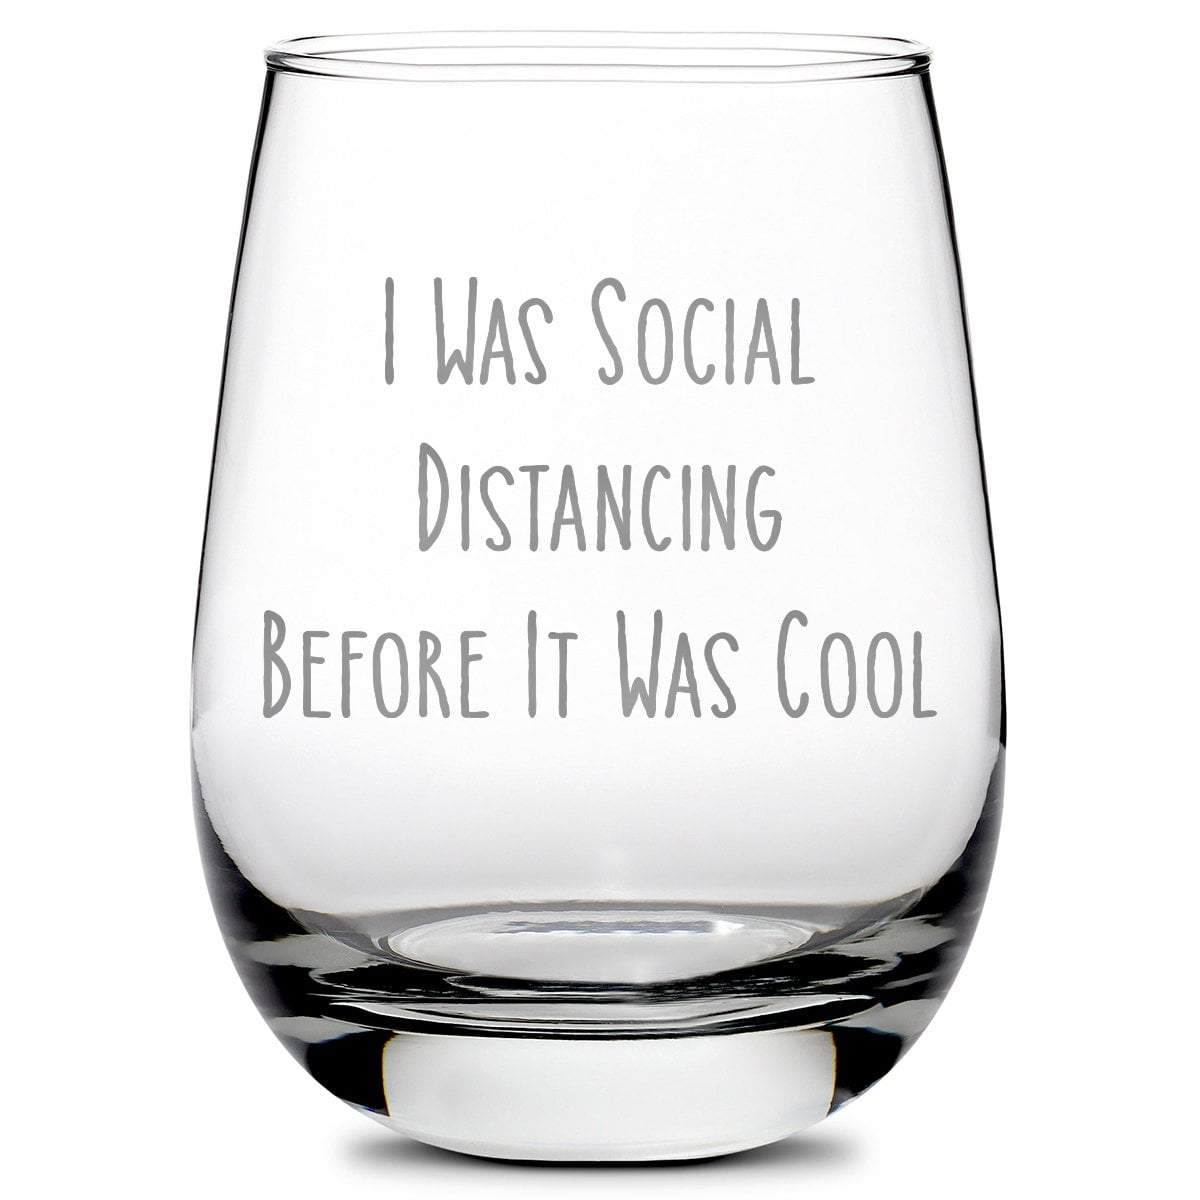 Premium Coronavirus Wine Glass - Hand-Etched Social Distancing Drinking Glasses,  Made in USA, 11oz by Integrity Bottles